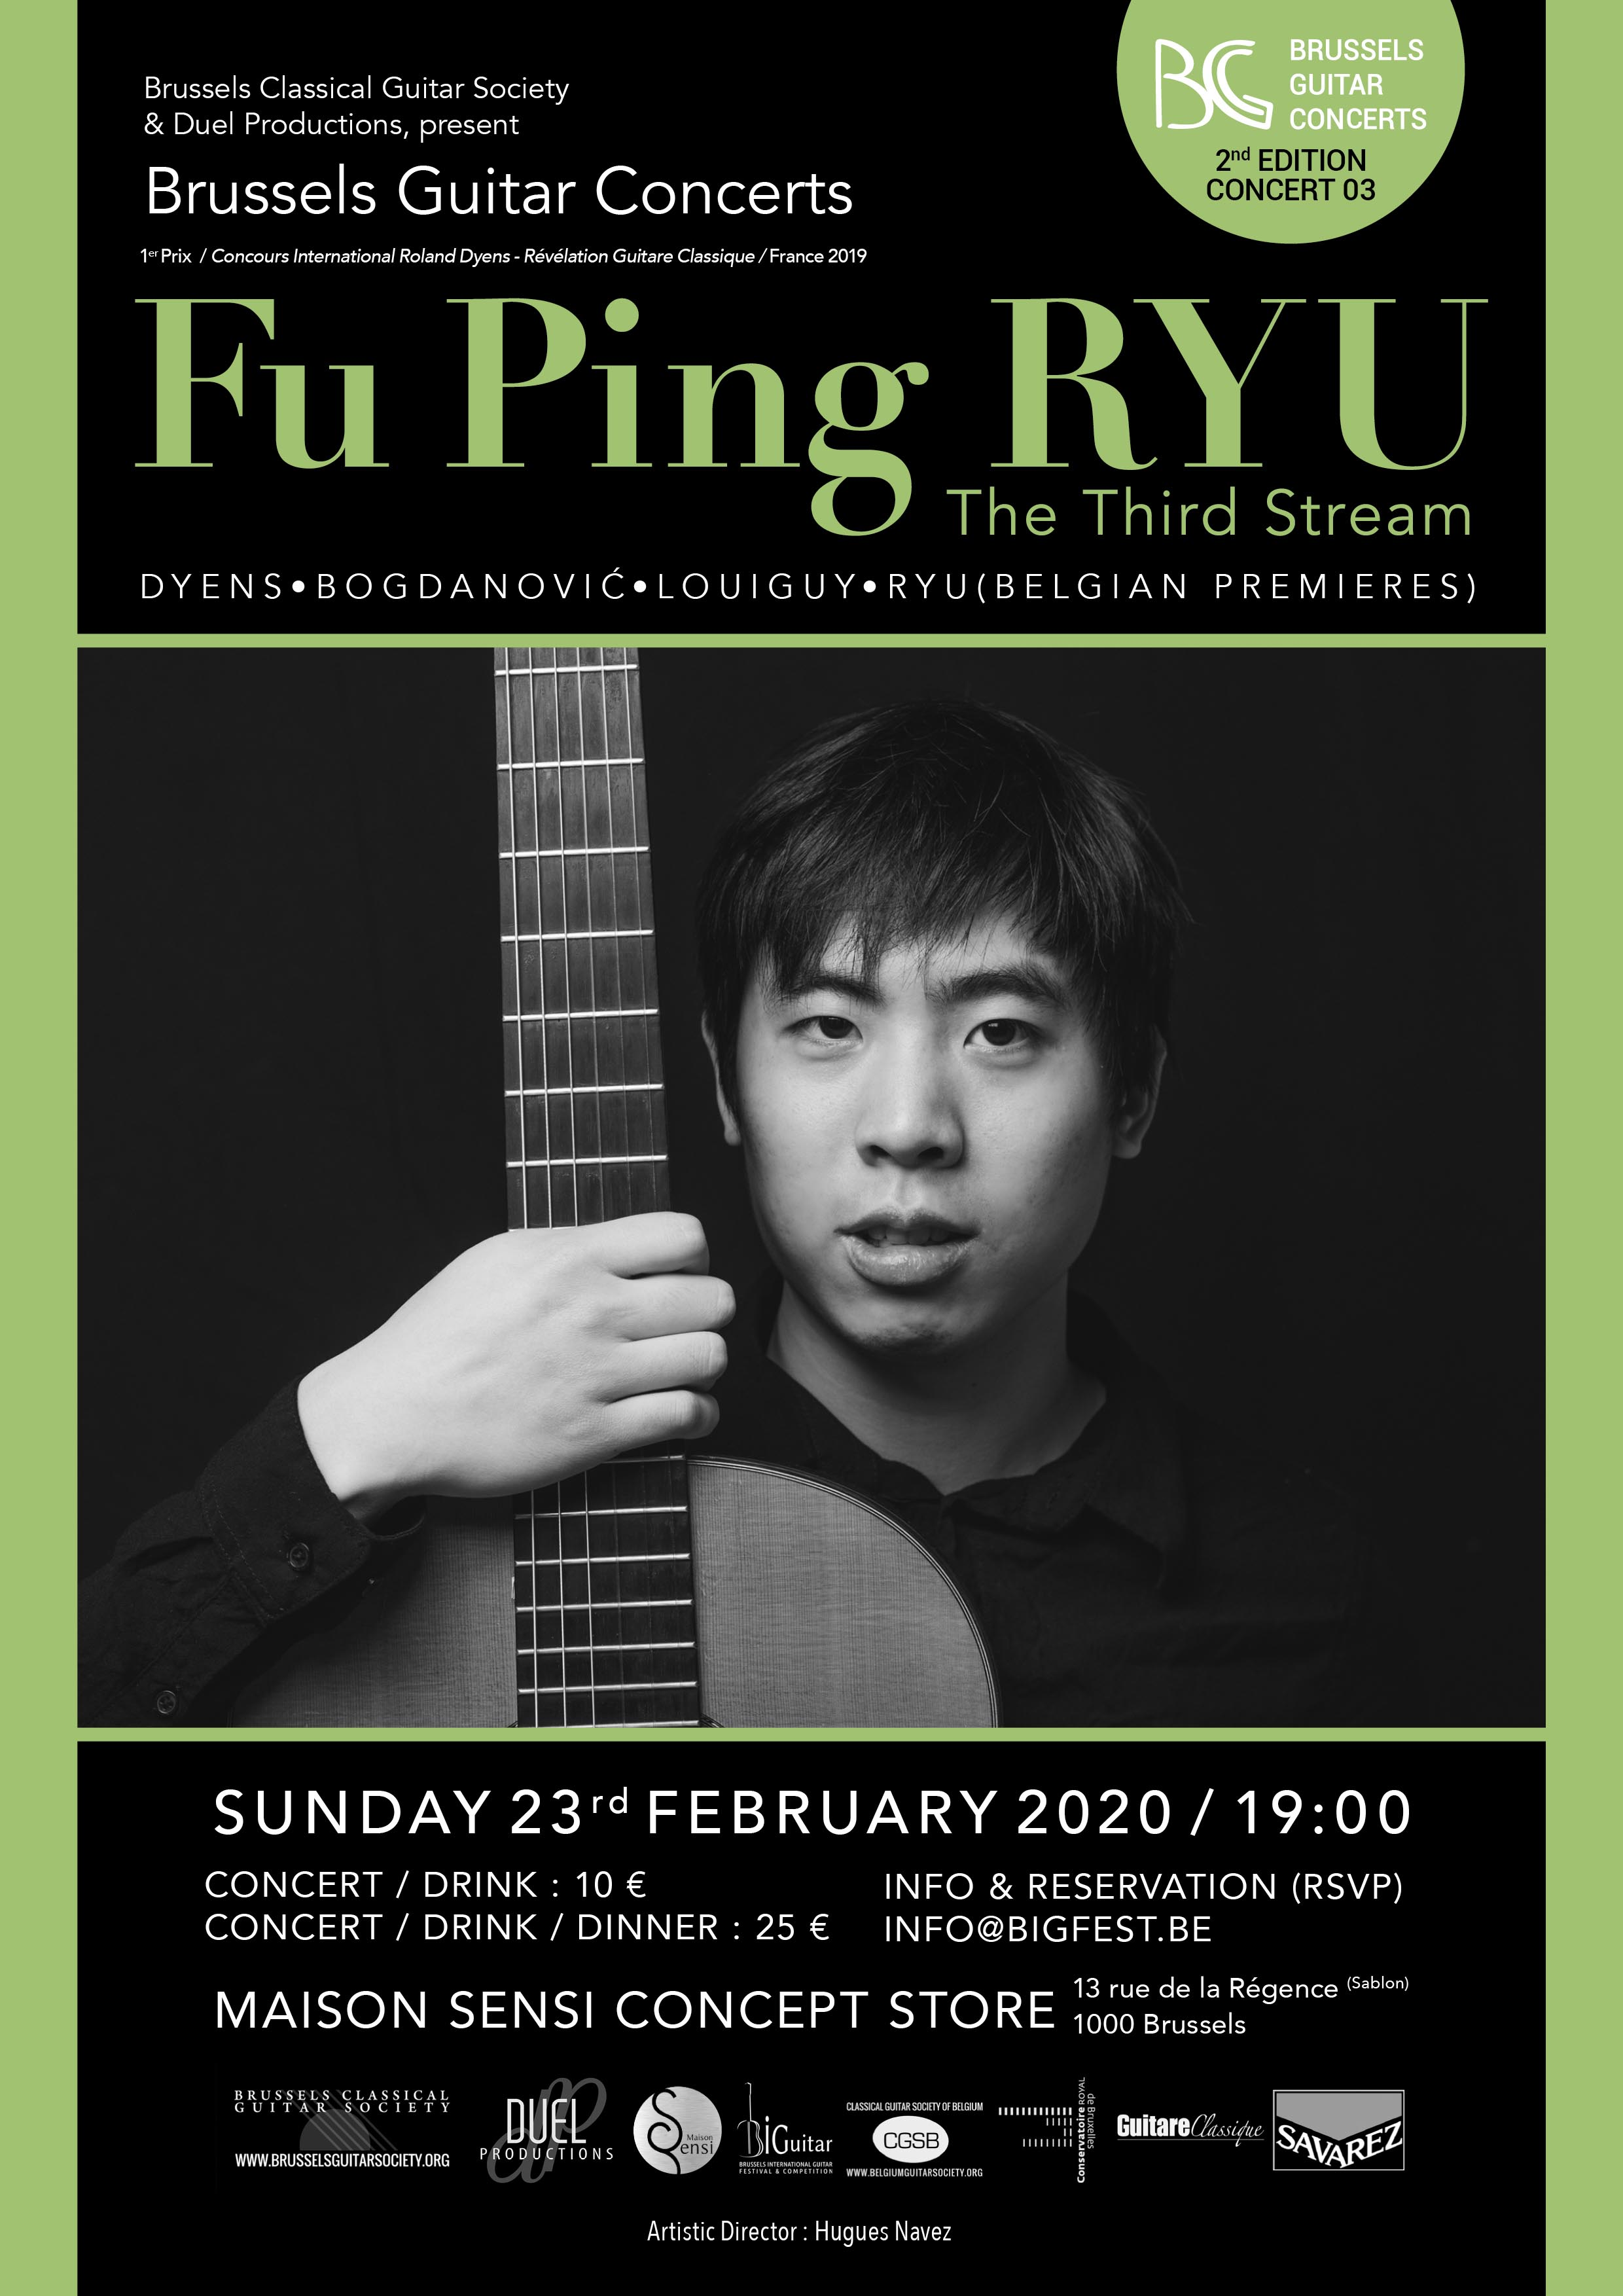 Fu Ping Ryu - Brussels Guitar Concerts